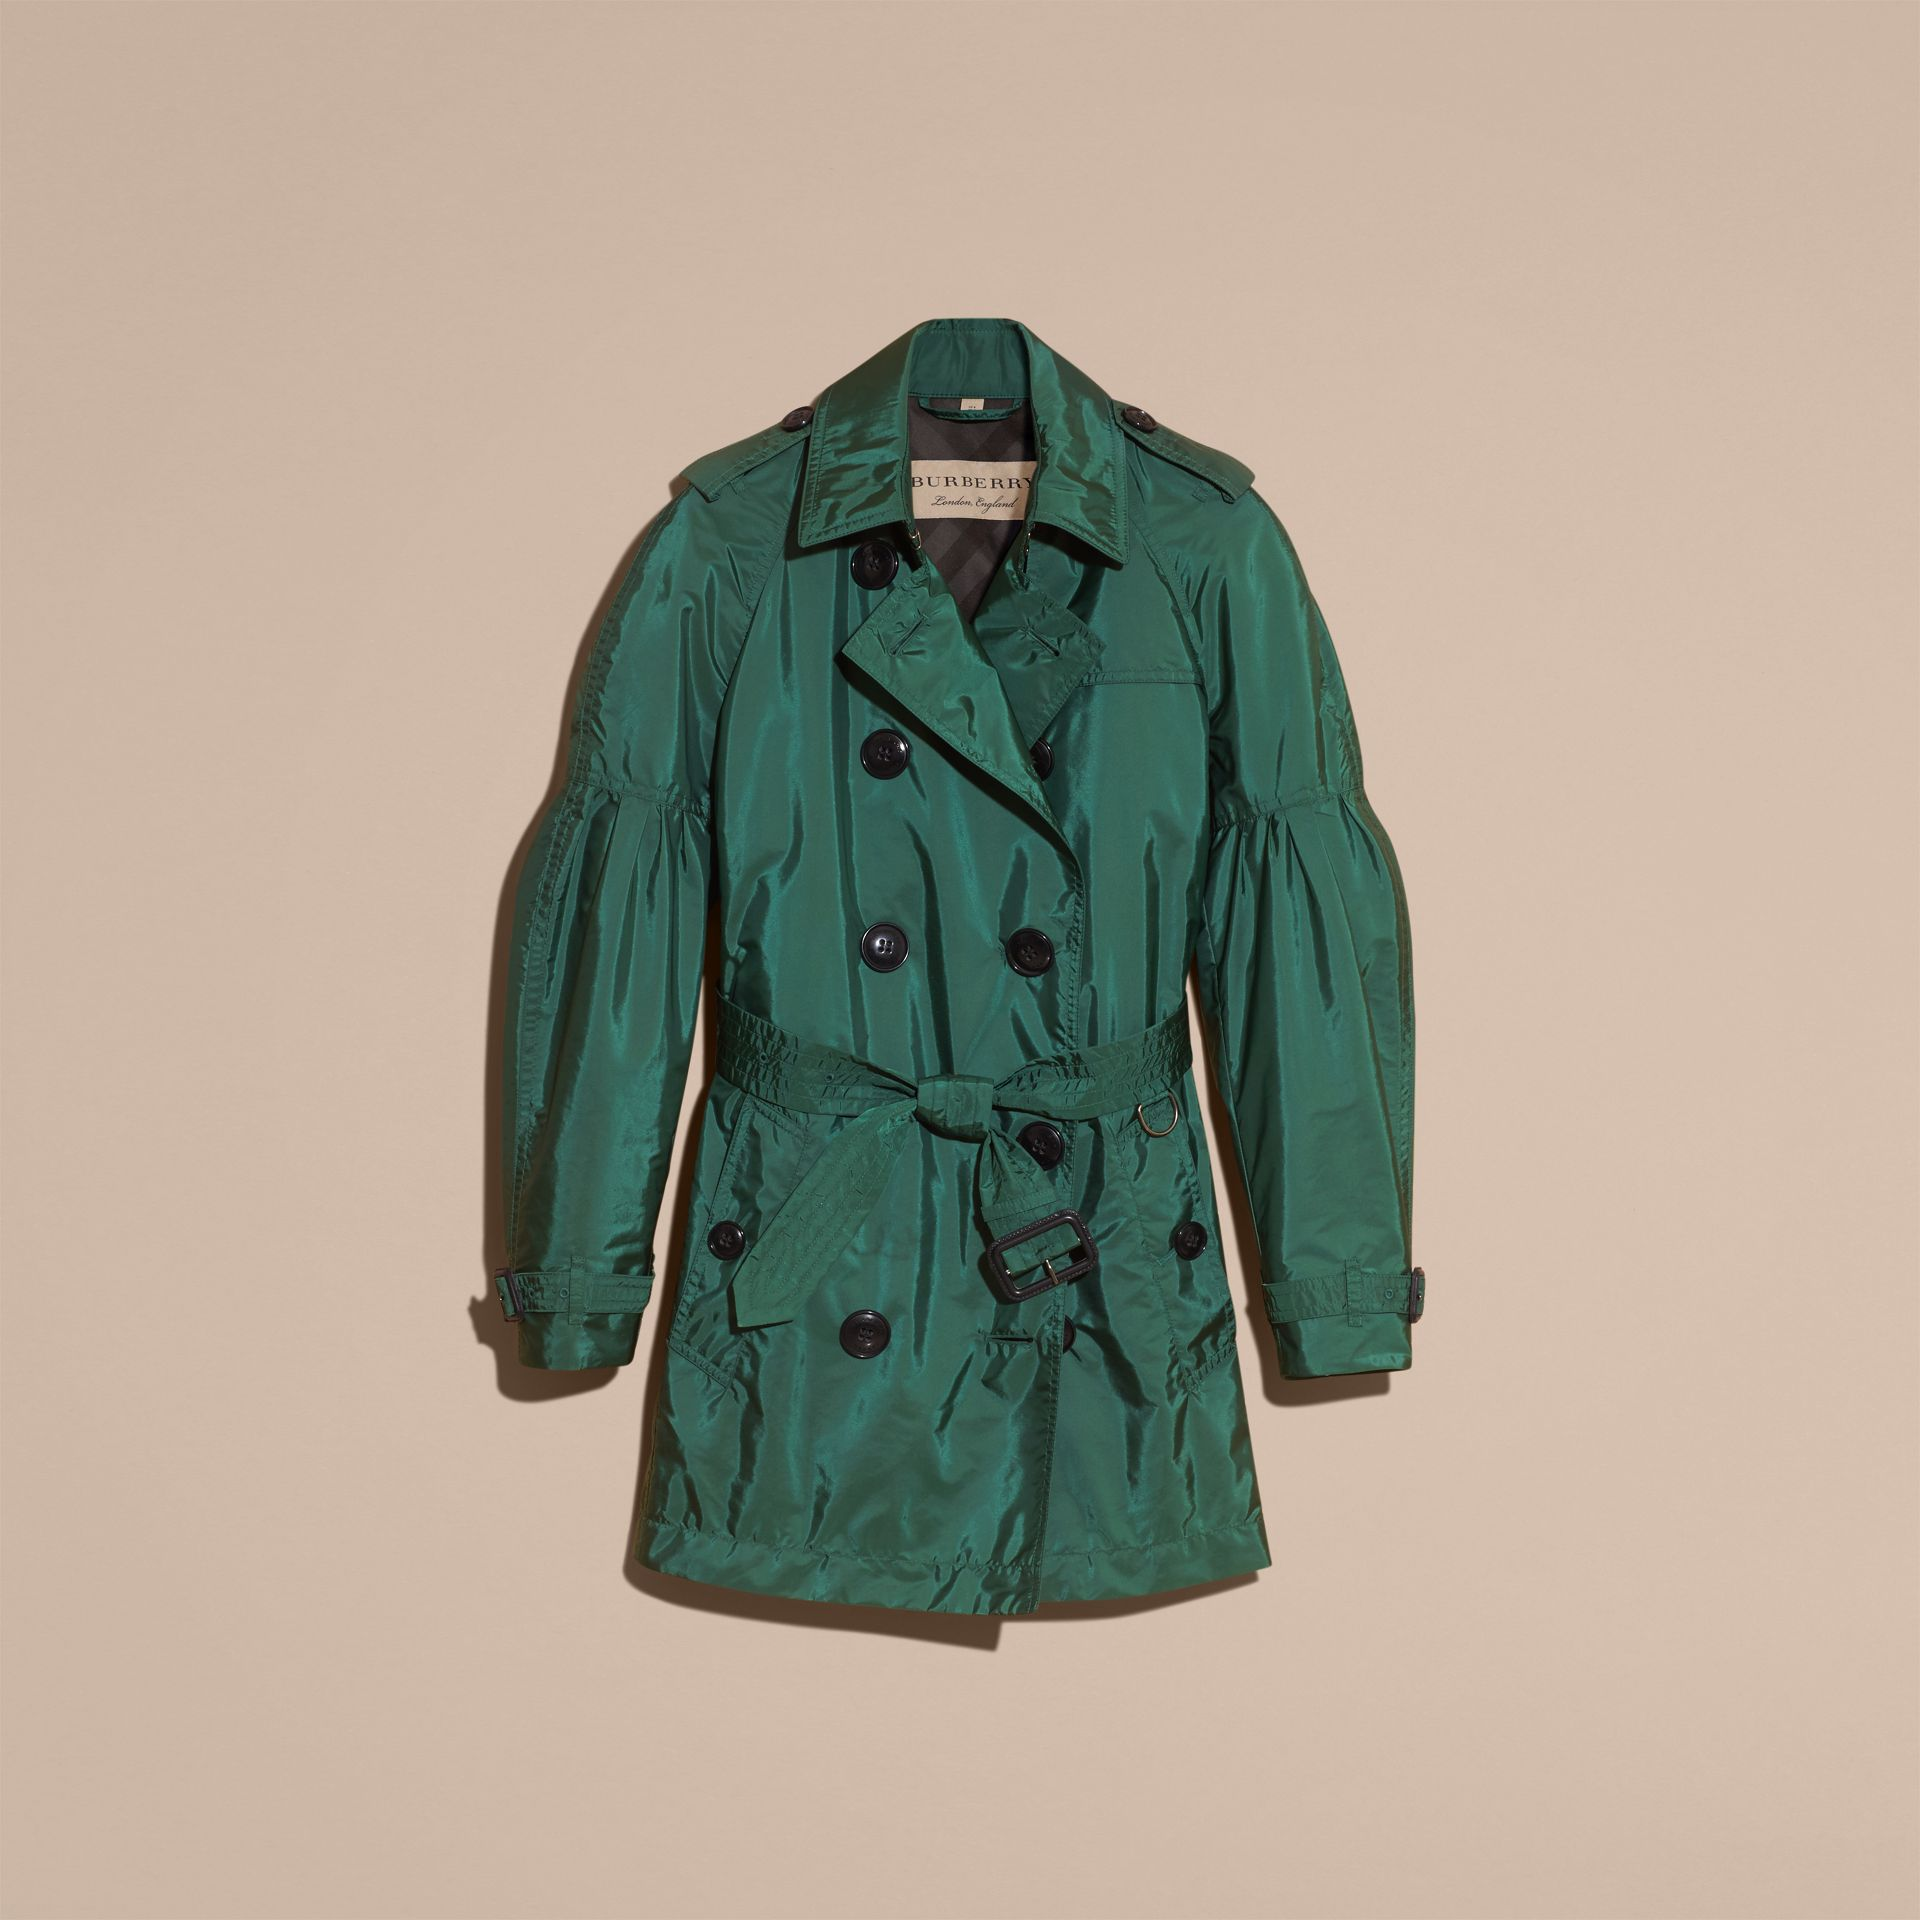 Vert bouteille intense Trench-coat repliable avec manches cloches Vert Bouteille Intense - photo de la galerie 4